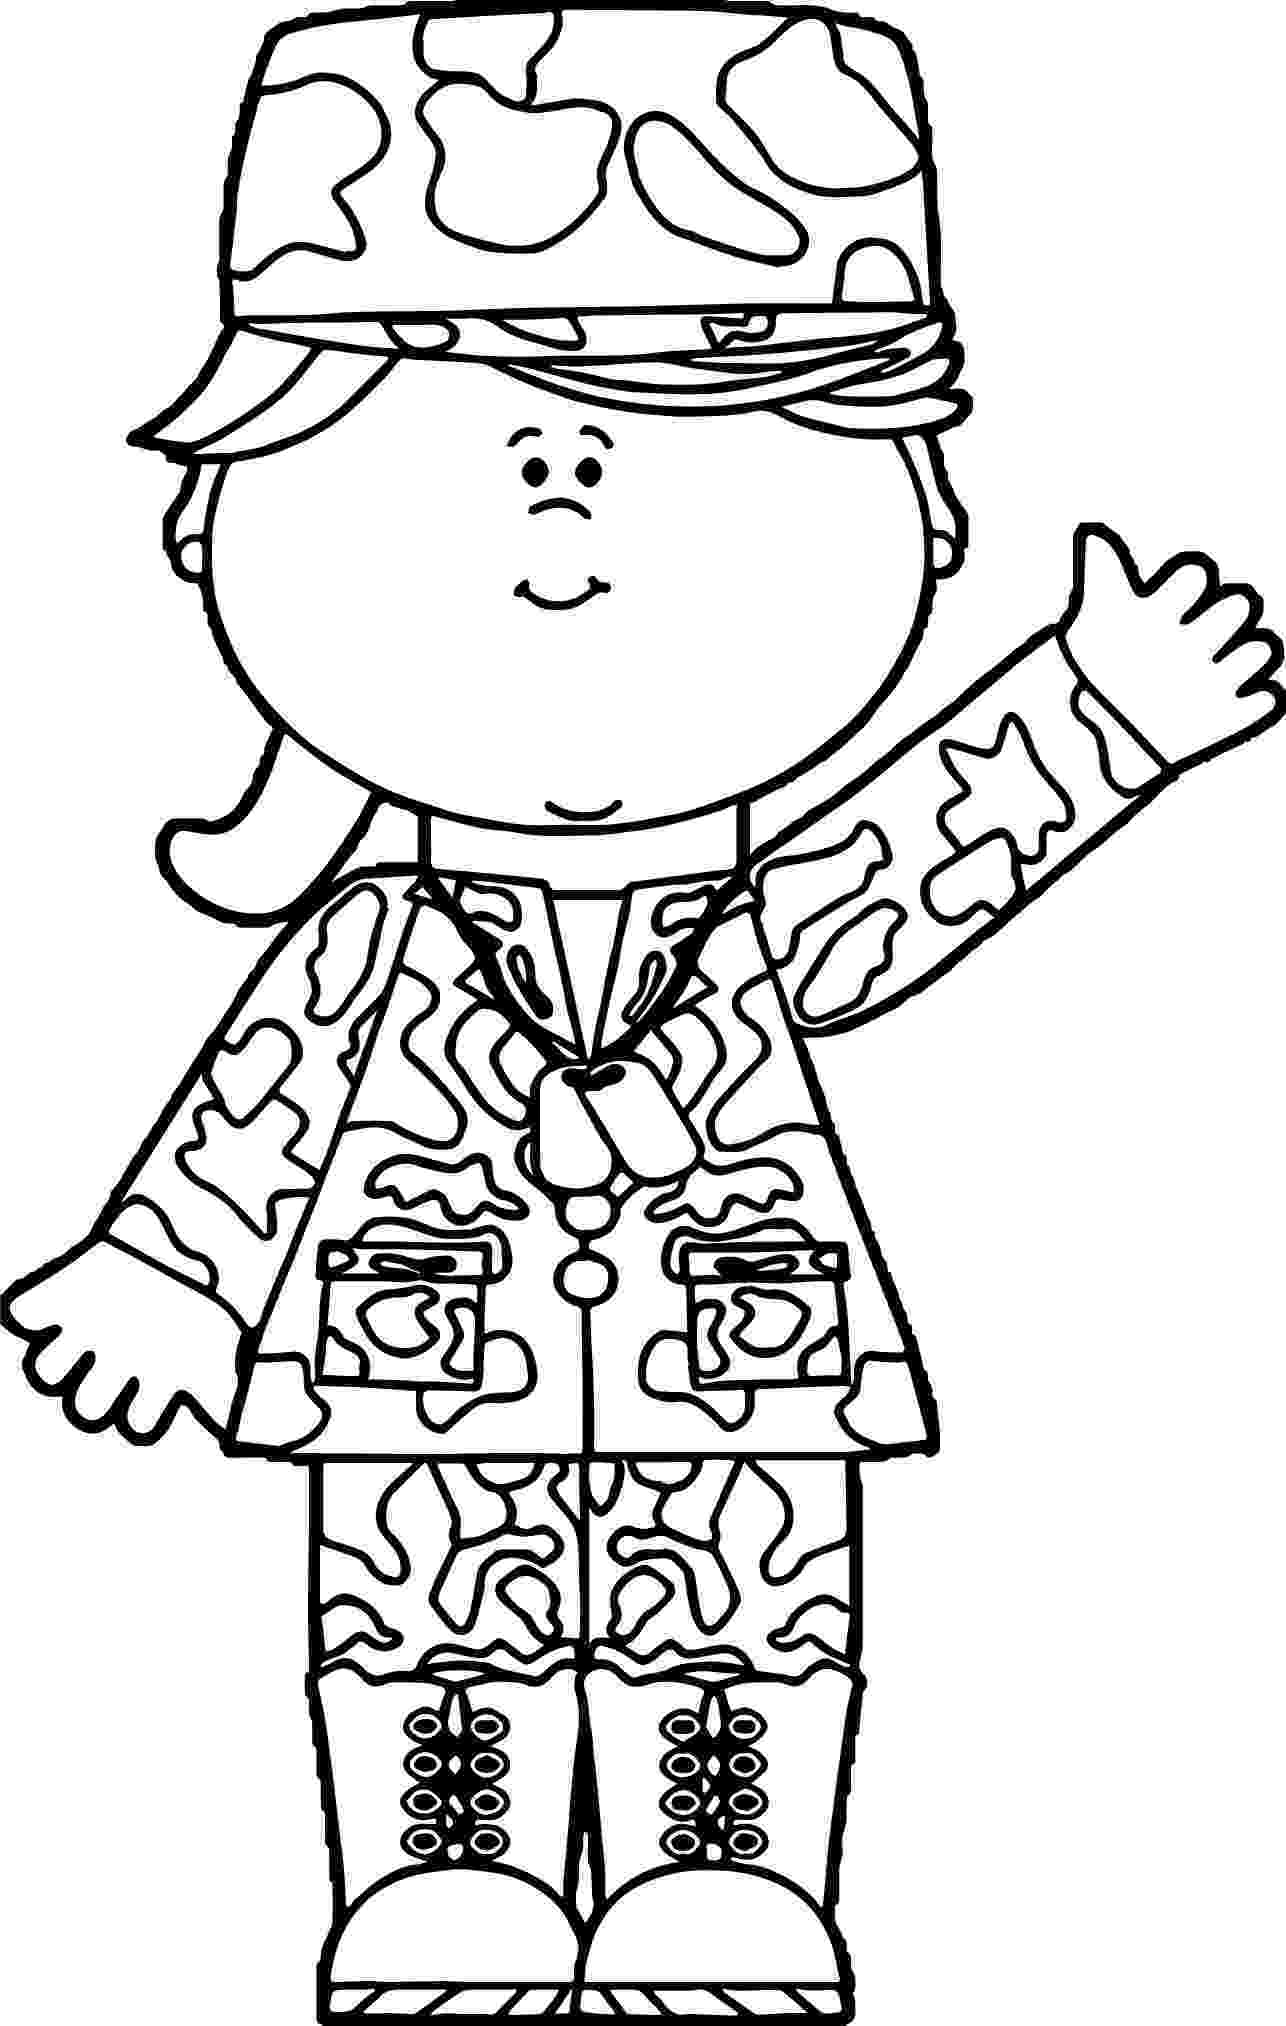 soldier coloring page free printable army coloring pages for kids cool2bkids coloring soldier page